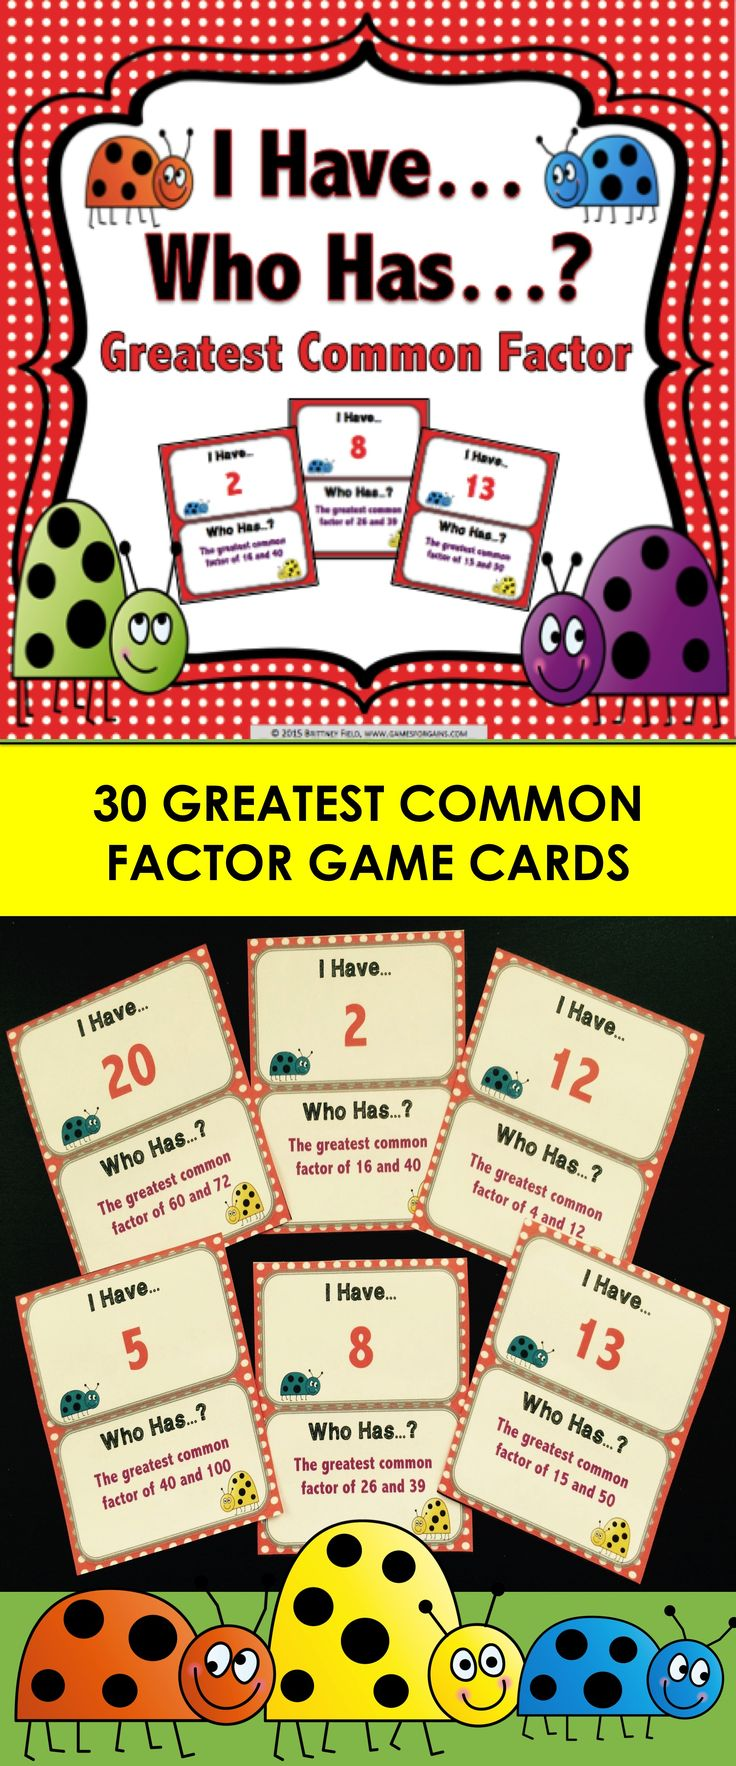 Greatest Common Factor 'I Have...Who Has' Game features 30 playing cards to help students practice determining the greatest common factor of two numbers. These 'I Have...Who Has' cards are so much fun, yet so simple to use. Plus, they can be played by individual students, by a small group of students, or even by the whole class!